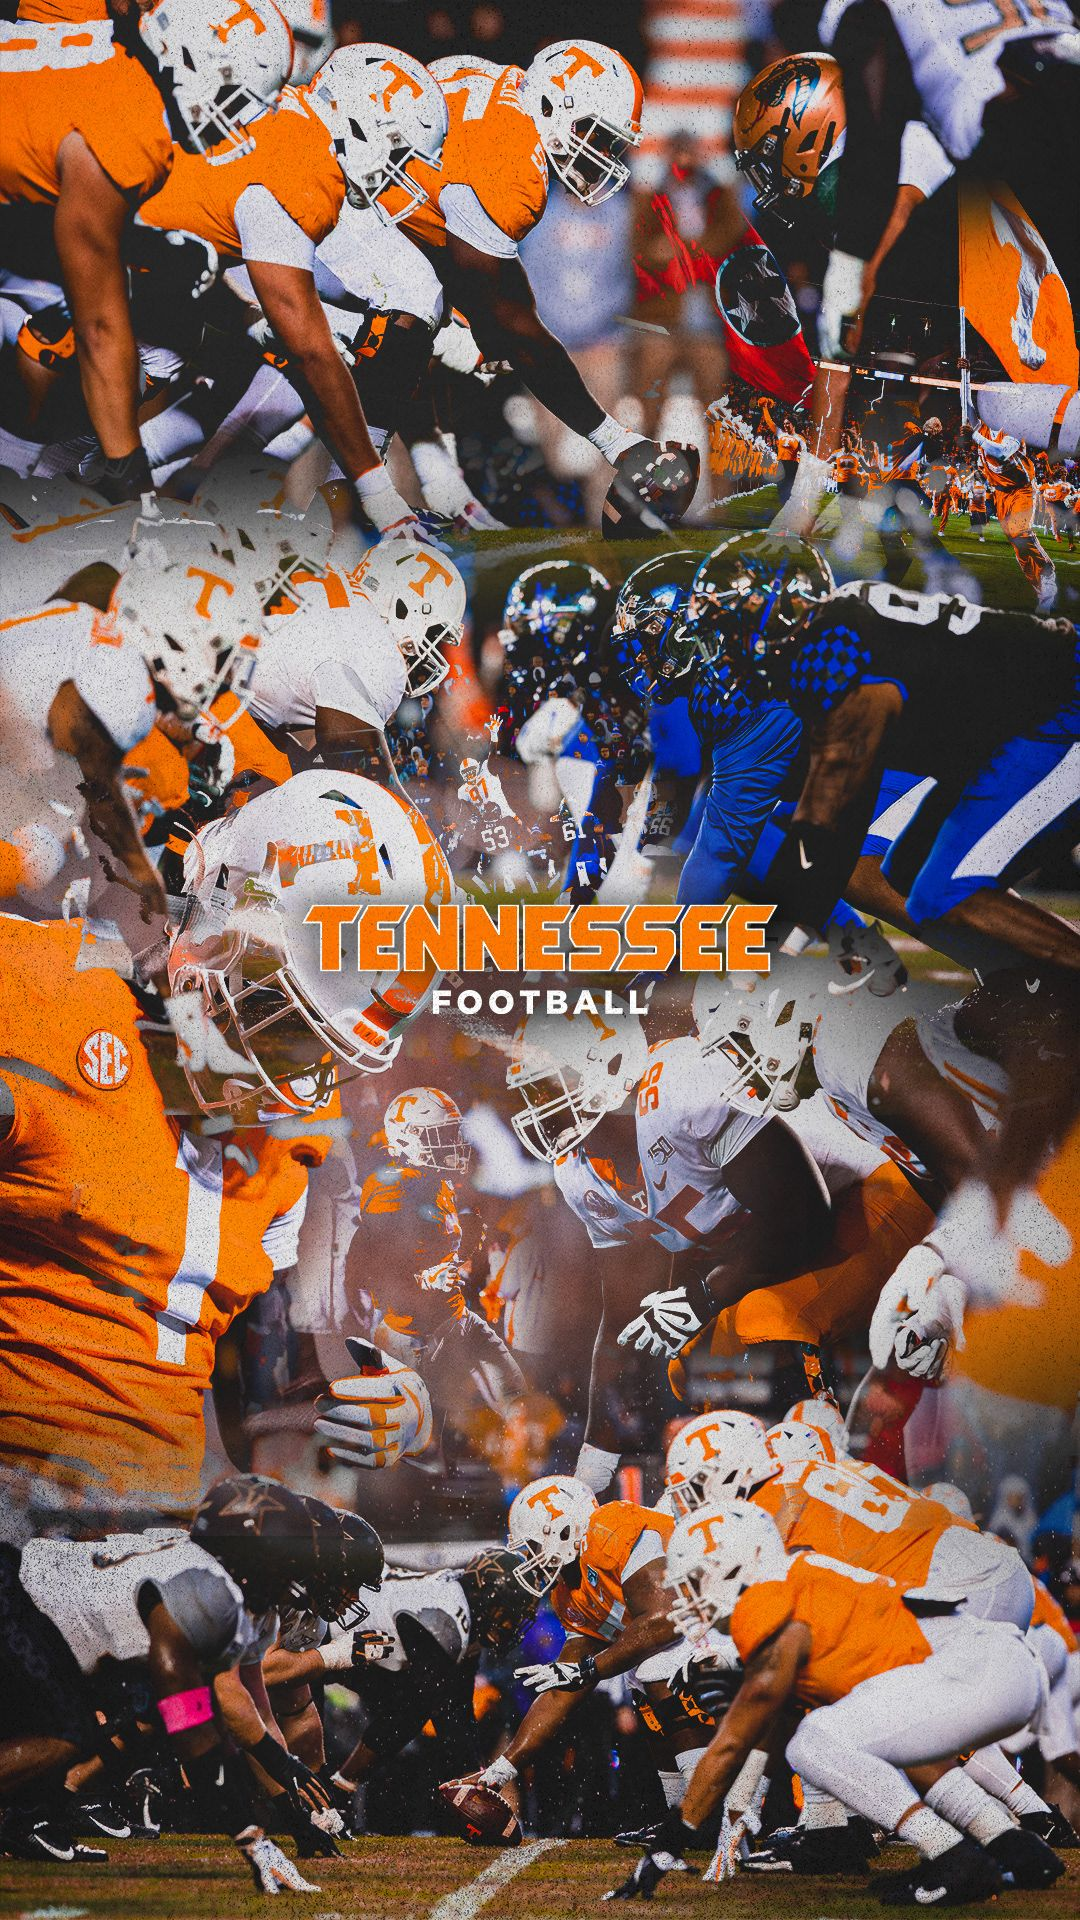 Tennessee Football 2019 On Behance In 2020 Tennessee Football Tennessee Volunteers Football Tennessee